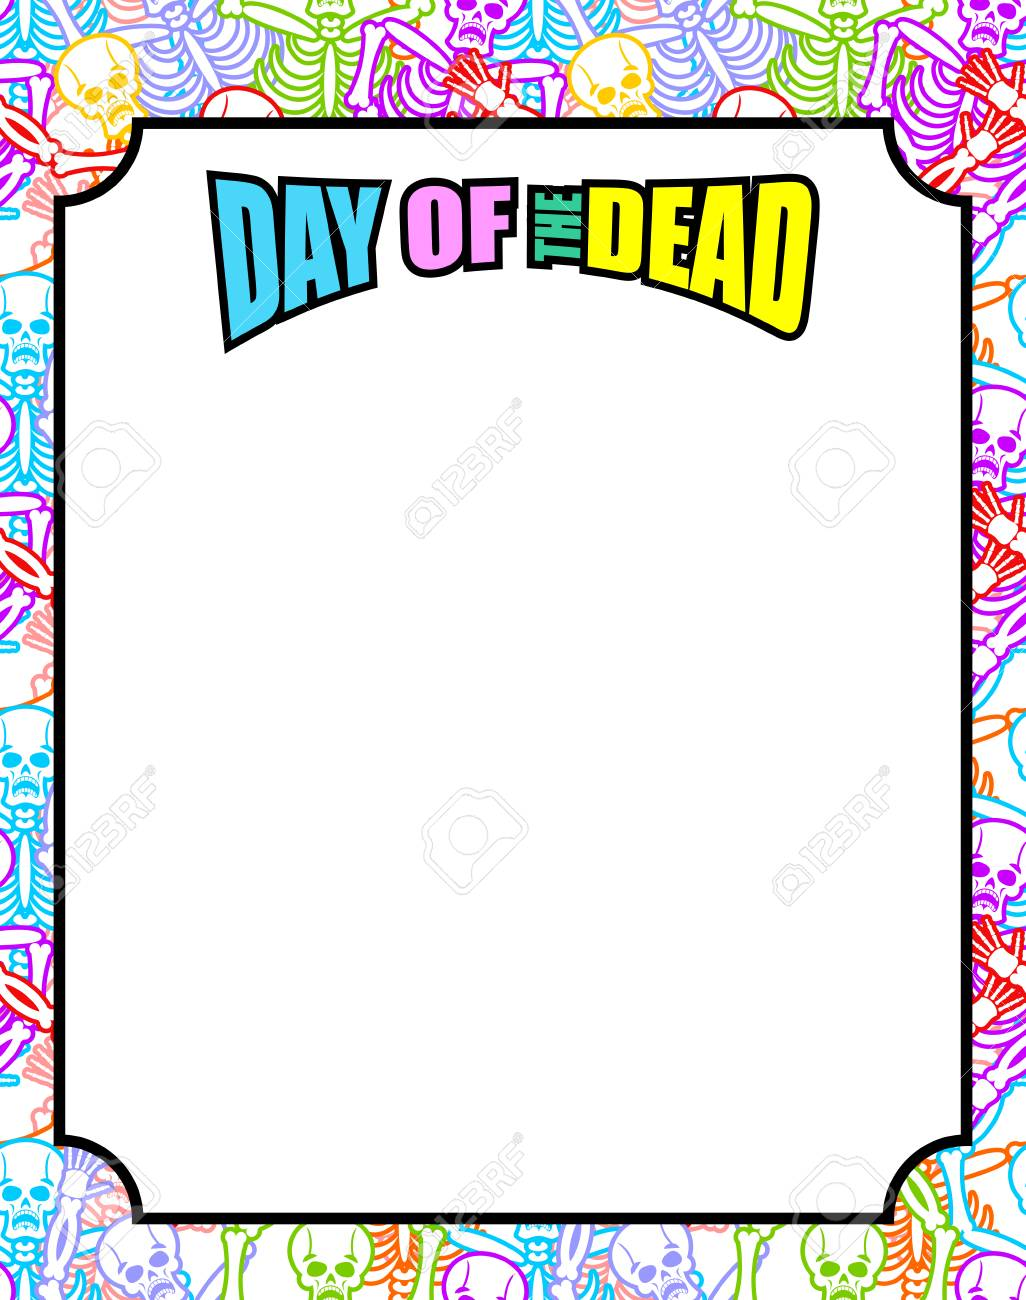 Frame for Day of the Dead. Multicolored skeletons. Color skull.